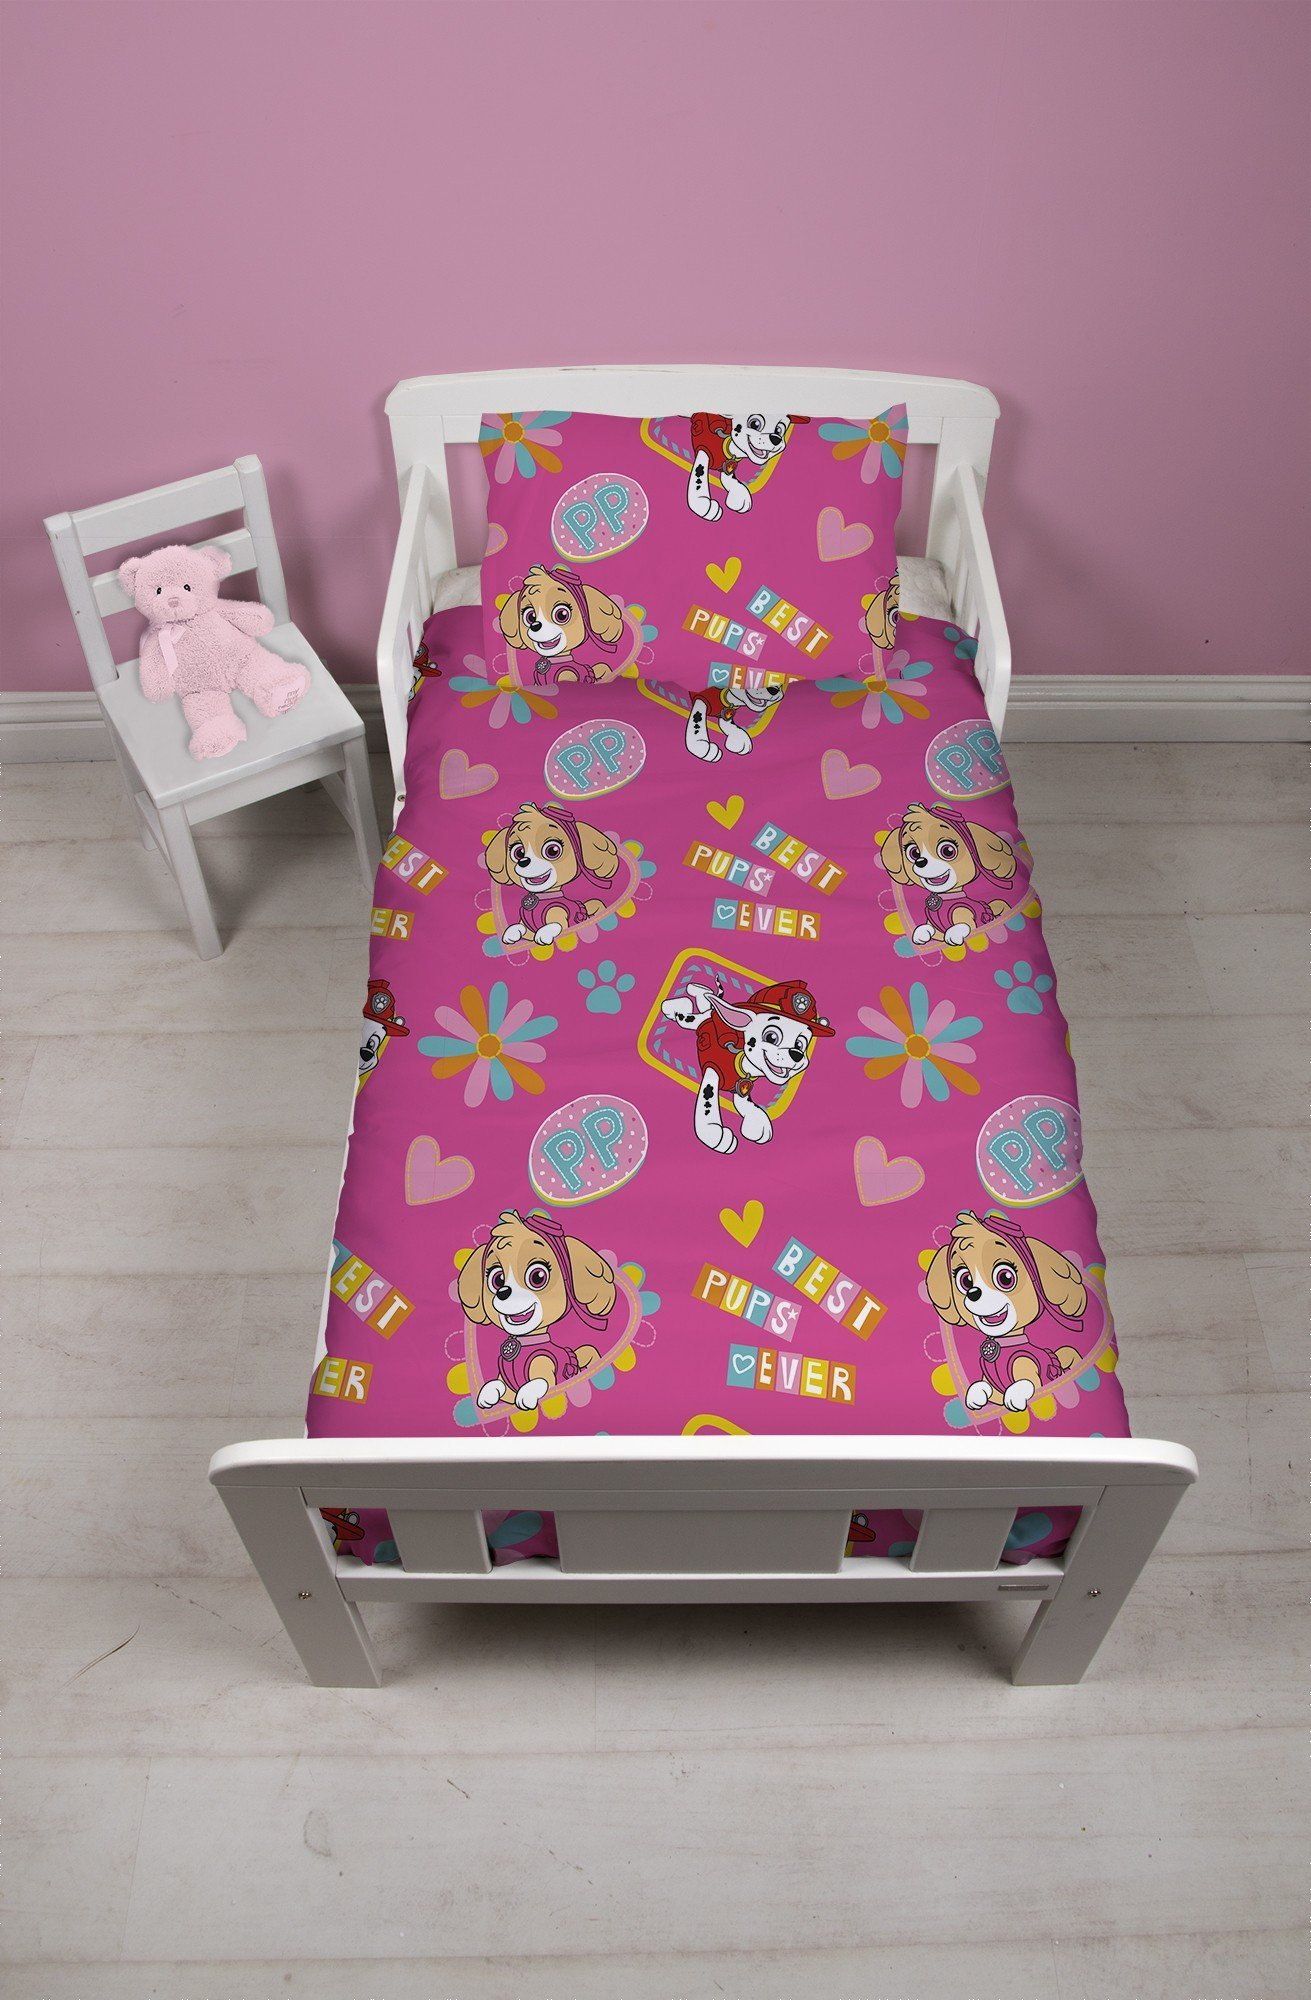 paw patrol dekbedovertrek 120x150 forever. Black Bedroom Furniture Sets. Home Design Ideas